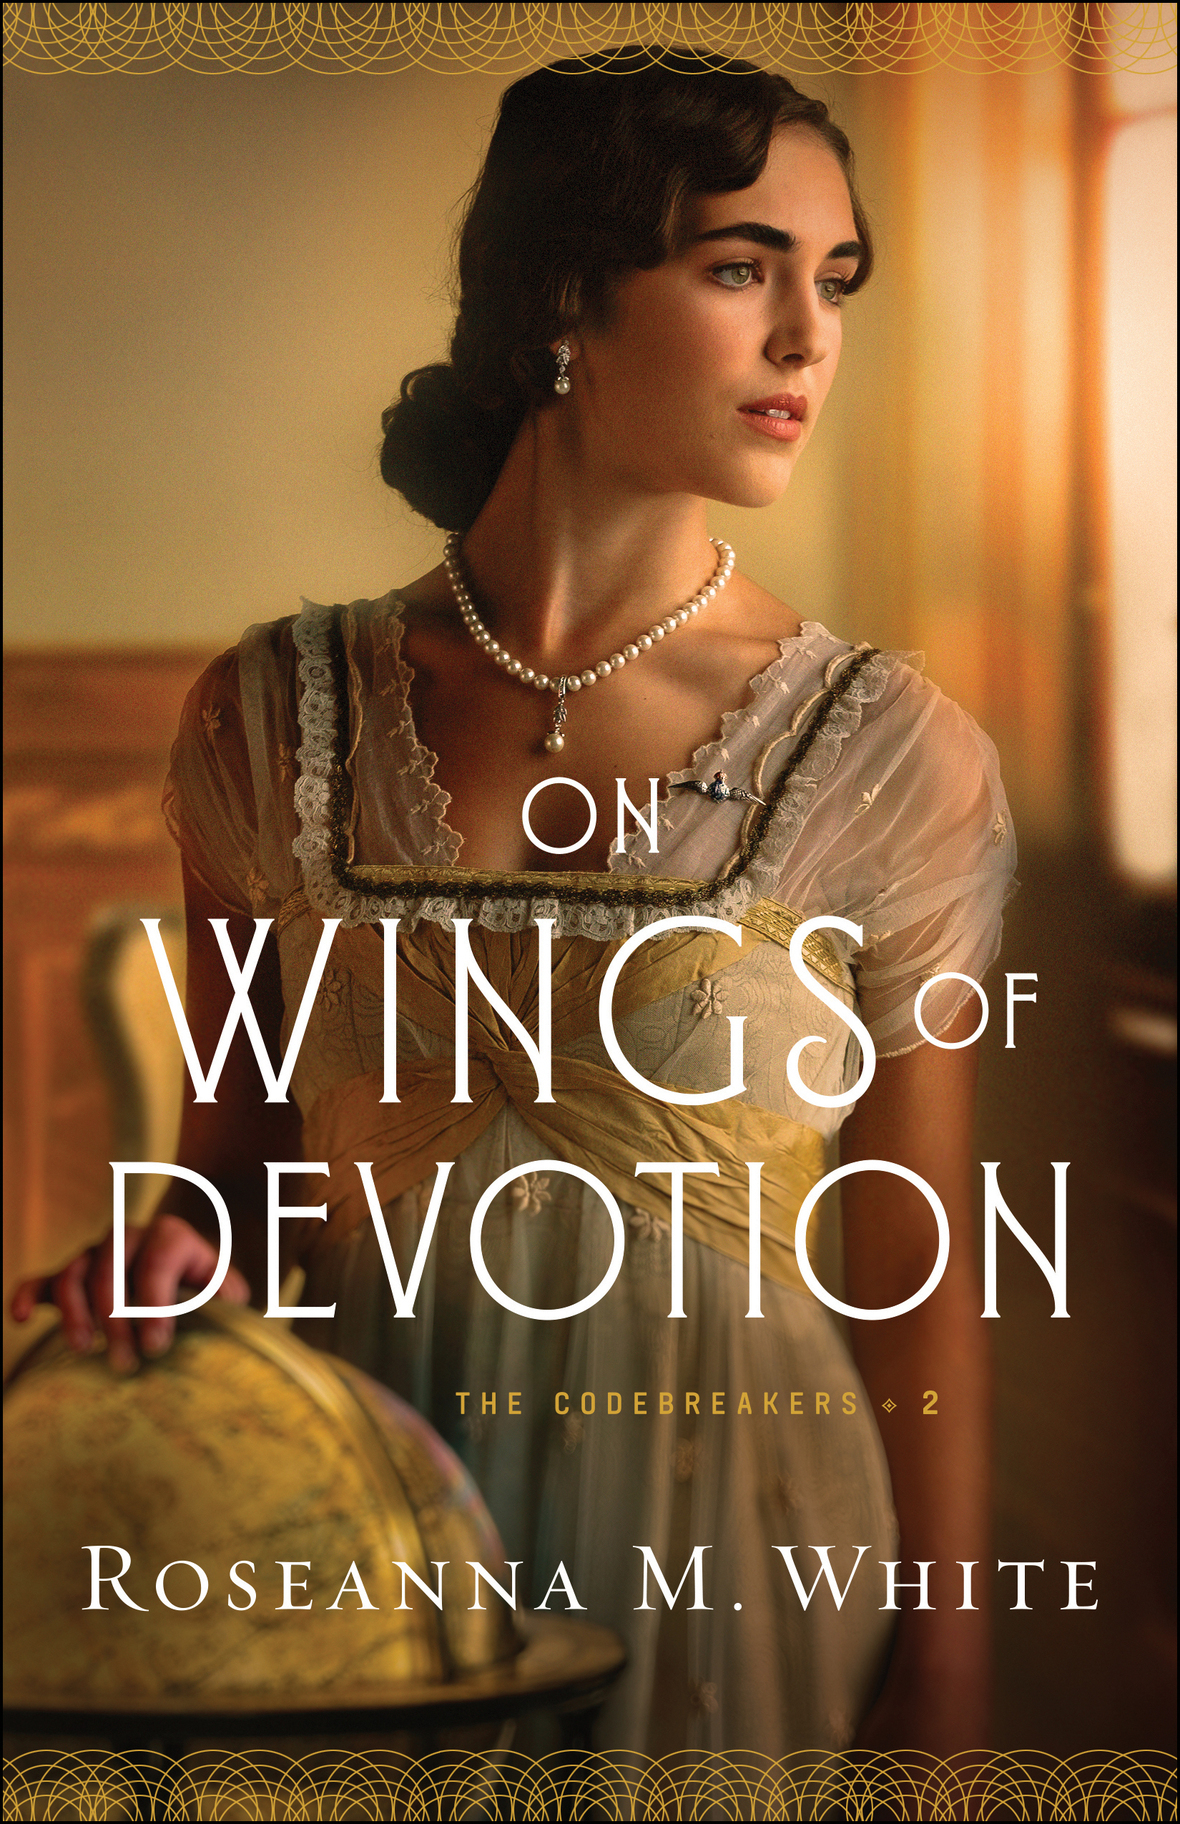 On Wings of Devotion - Roseanna M. White